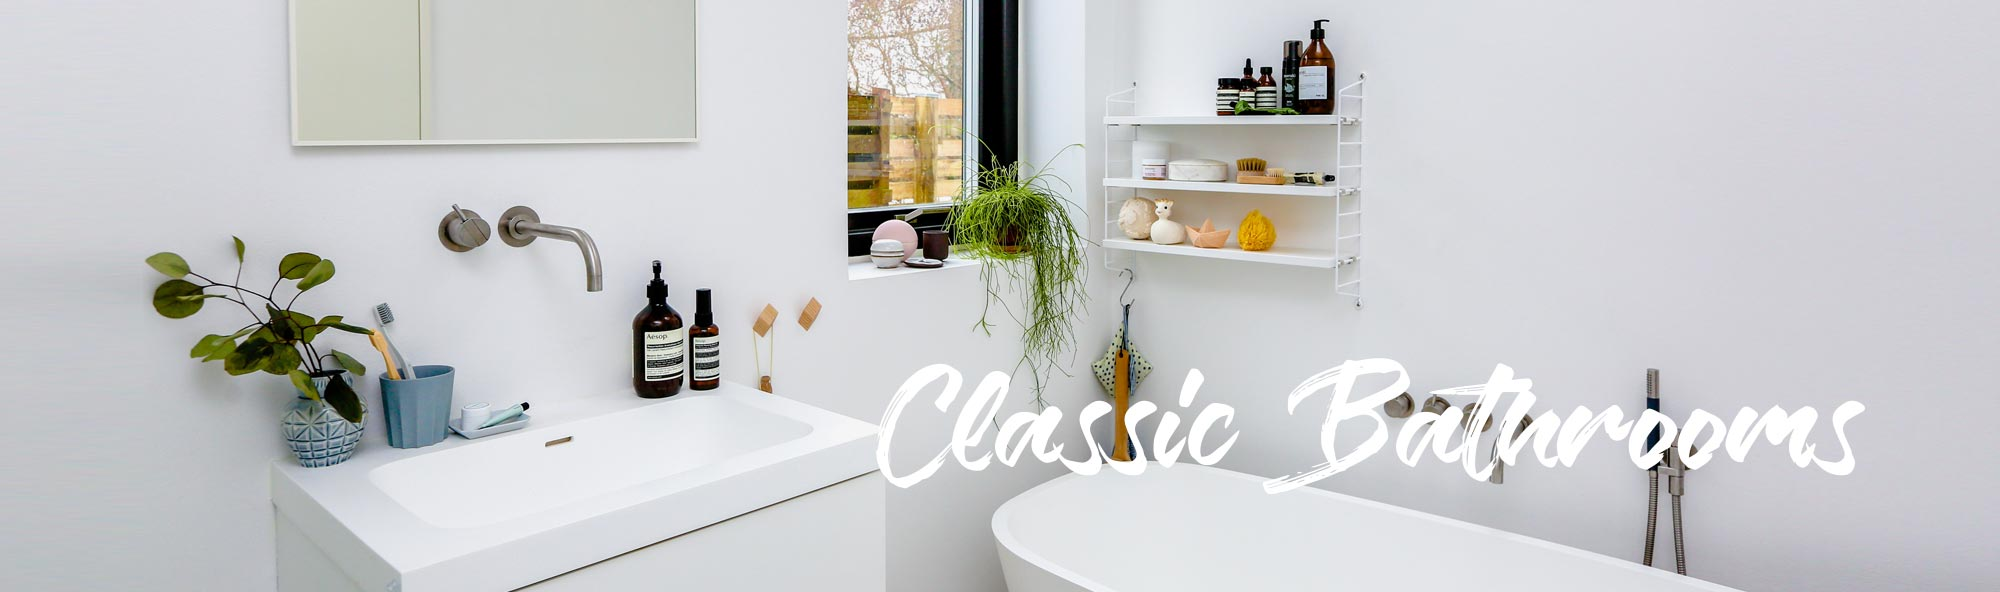 Classic Bathroom Renovations Auckland Renovate With Superior - Classic bathroom renovations